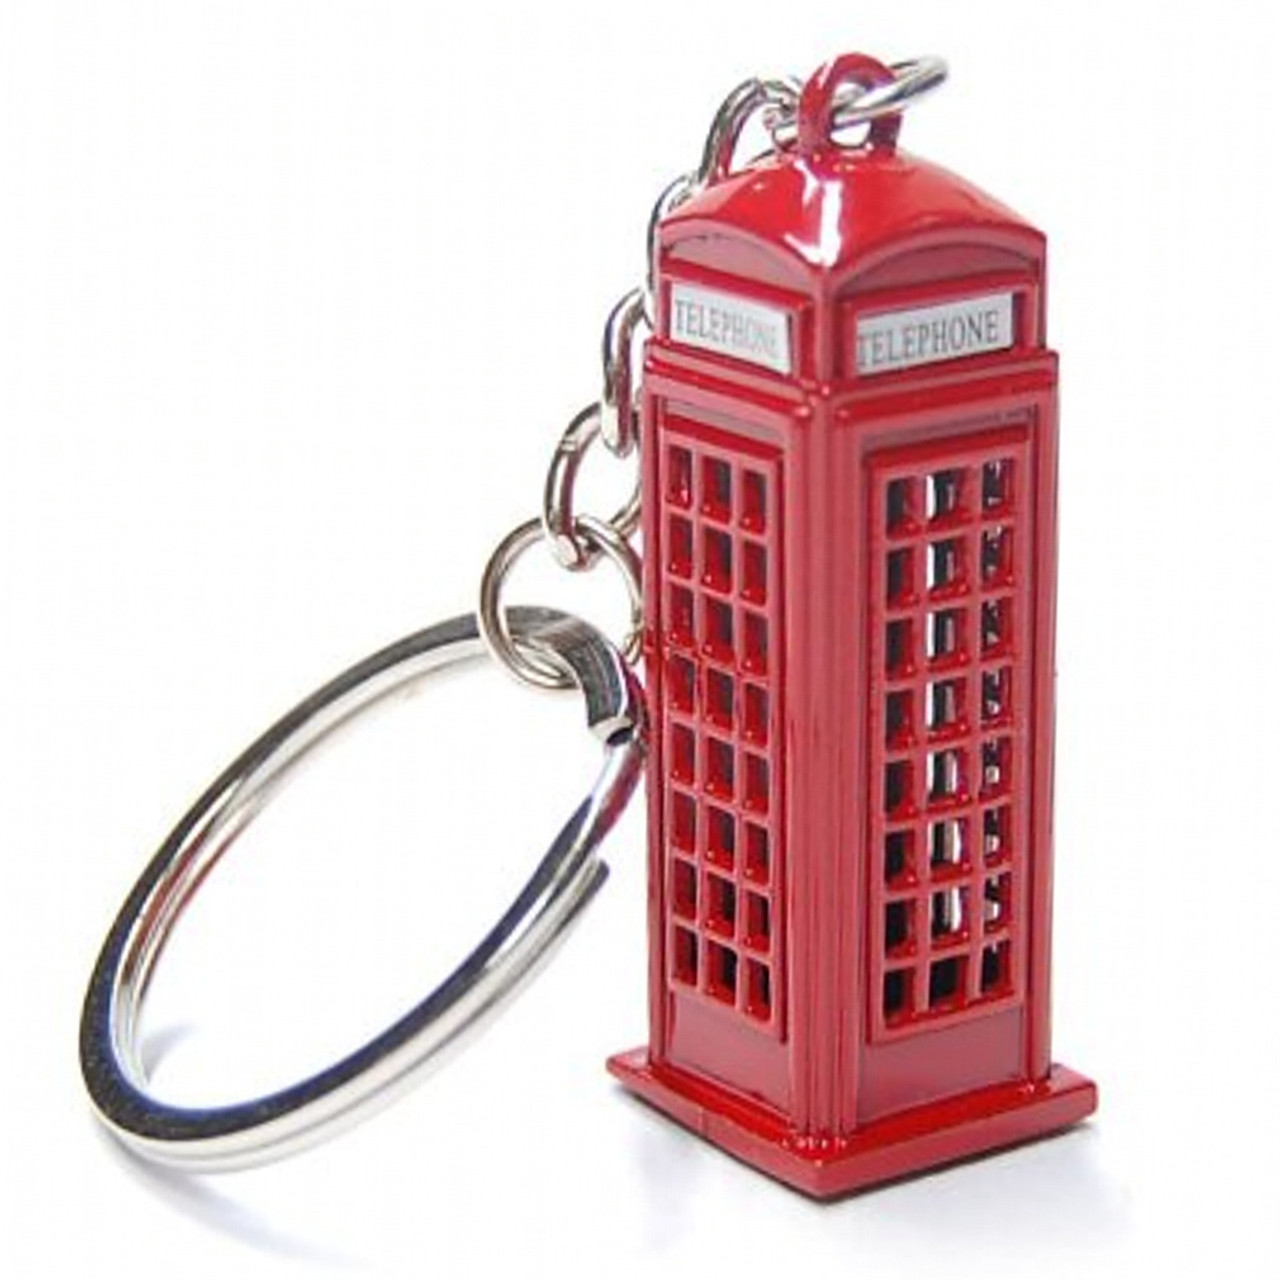 Red London Double Decker Bus Die Cast Metal Key Chain Key Ring or Key Fob Souvenir and Gift